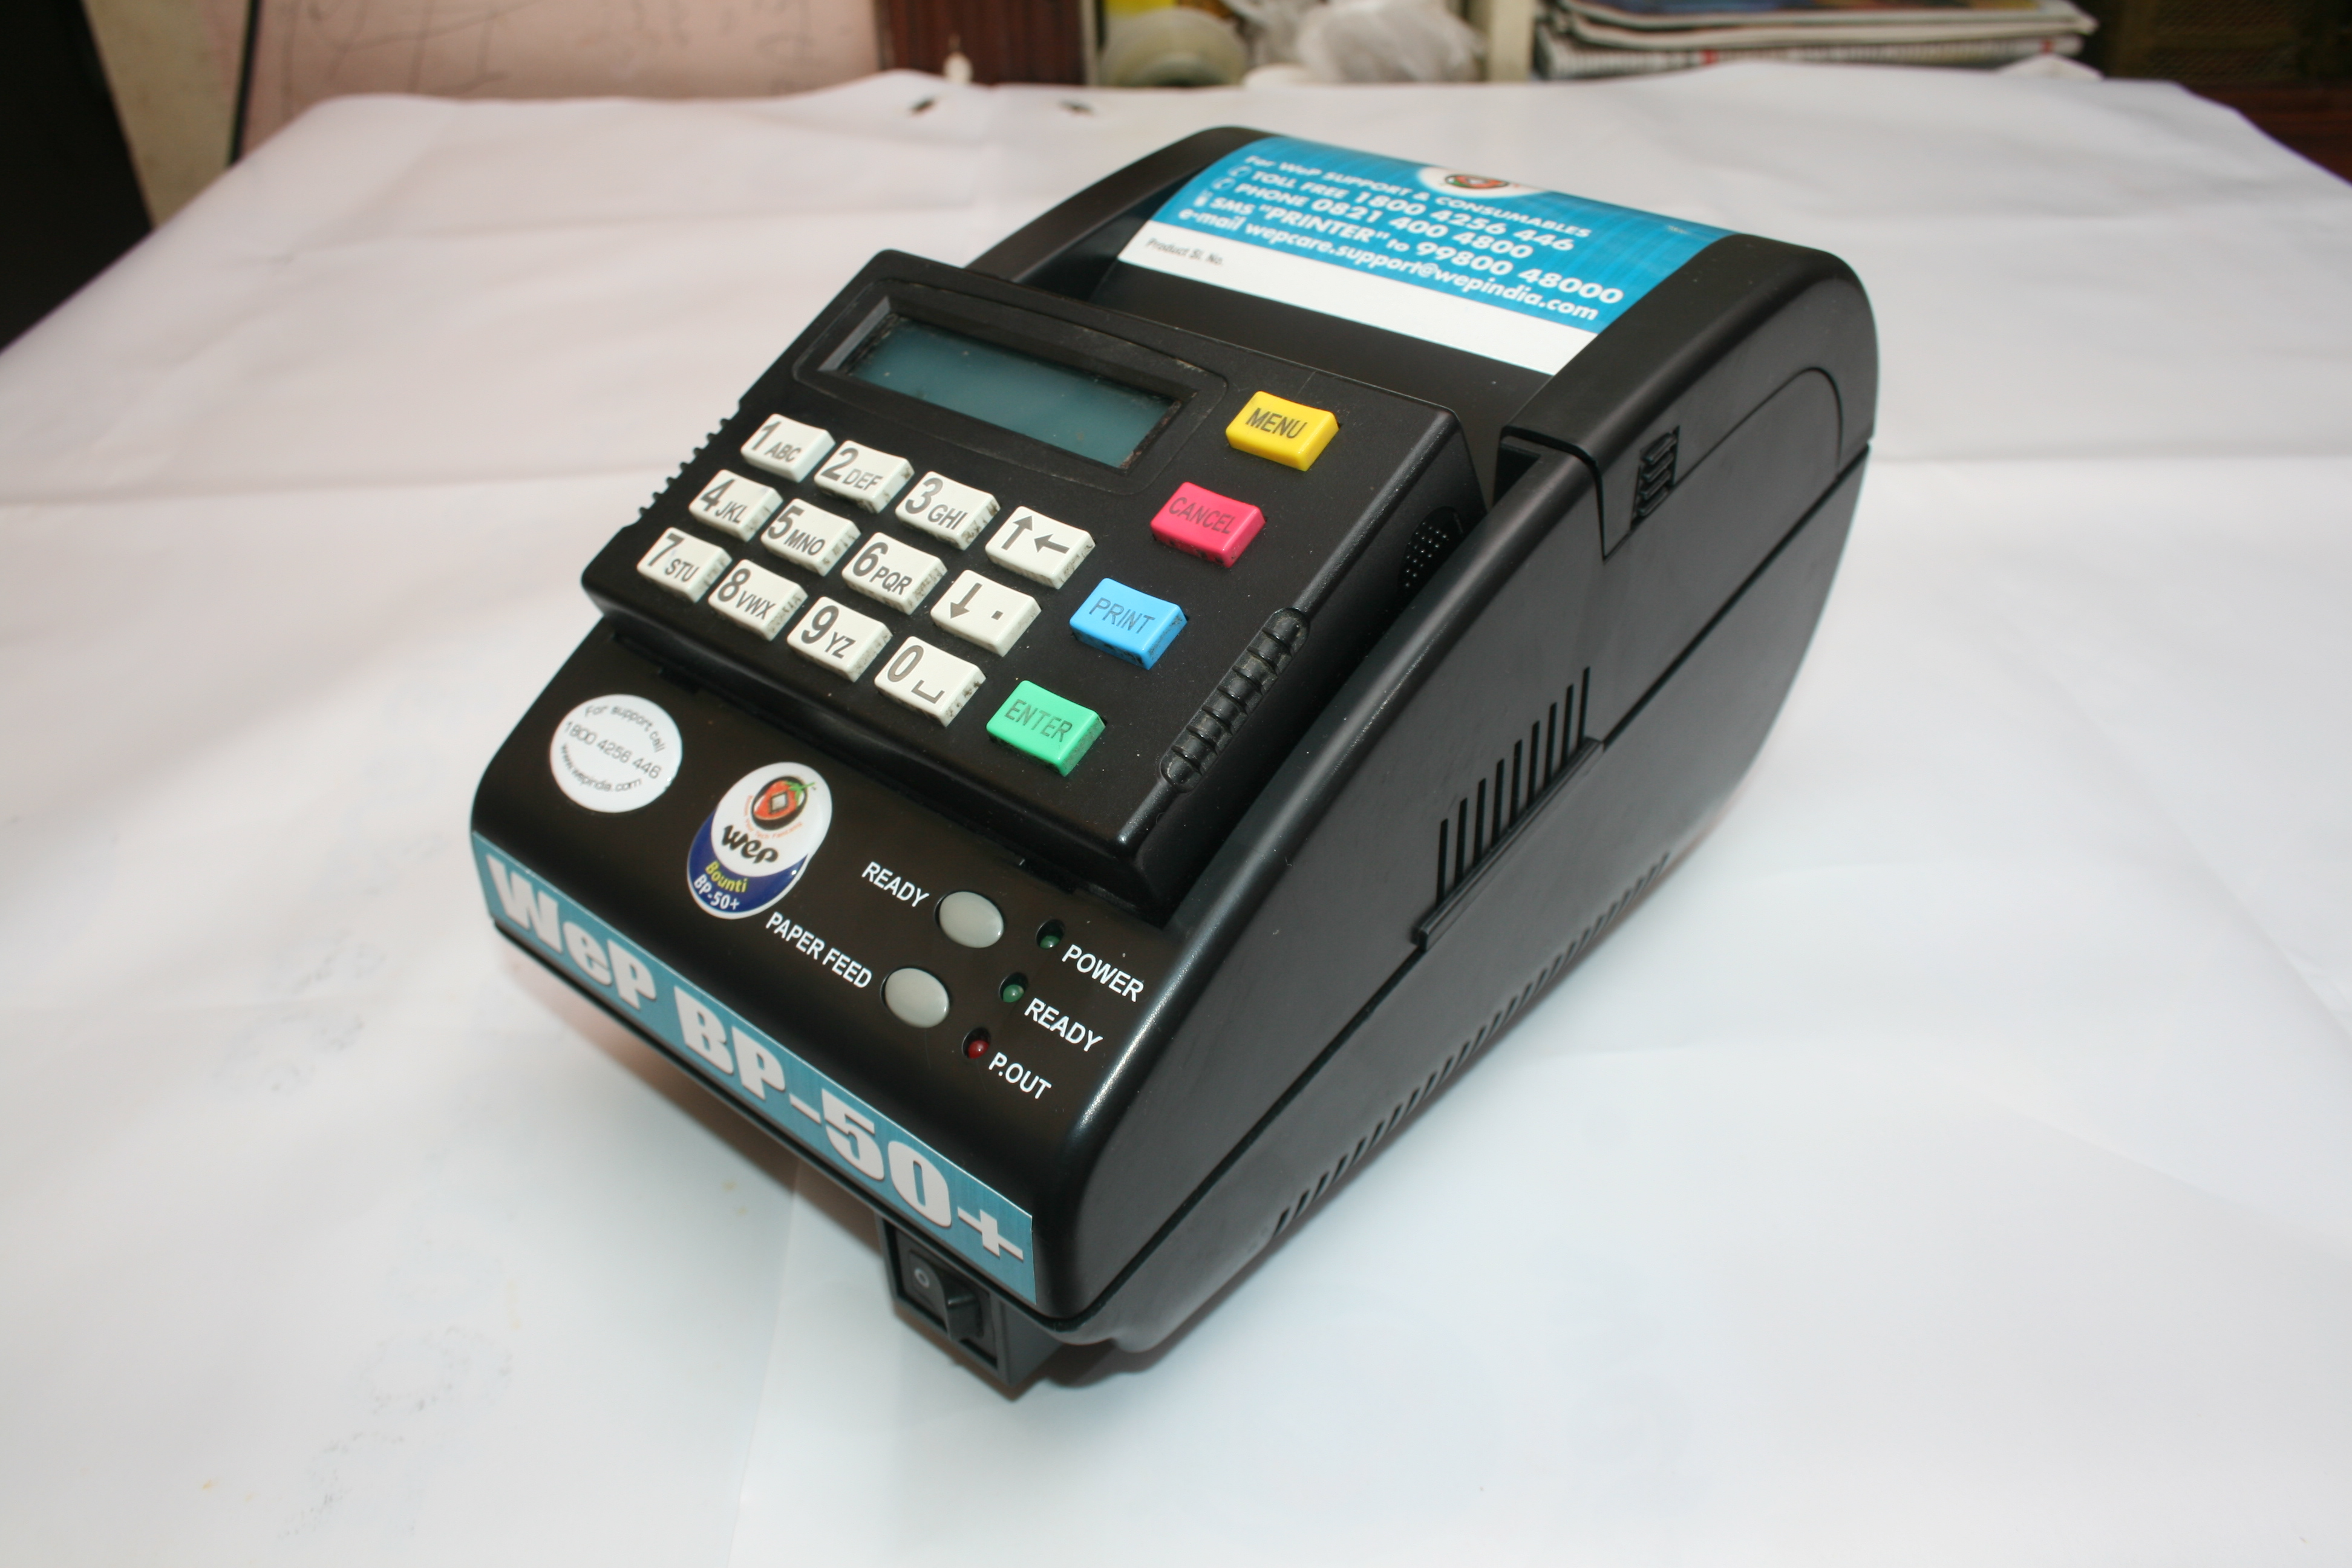 We also provide Complete PC Based Billing Solution with Cloud Computing facility. And also deal with all range of POS Printer, Standalone Billing Machine, TAB Based Billing Machine, Billing Software for Restaurant, Printers like Inkjet printer, Ink Tank Printers, All in One Printer, Photo Printer, Wi fi printers, Videojet Printer, Barcode printers, Hand Held Billing Machine and Scanner.  We manufacture LED Scrolling Displays & LED Writing Boards